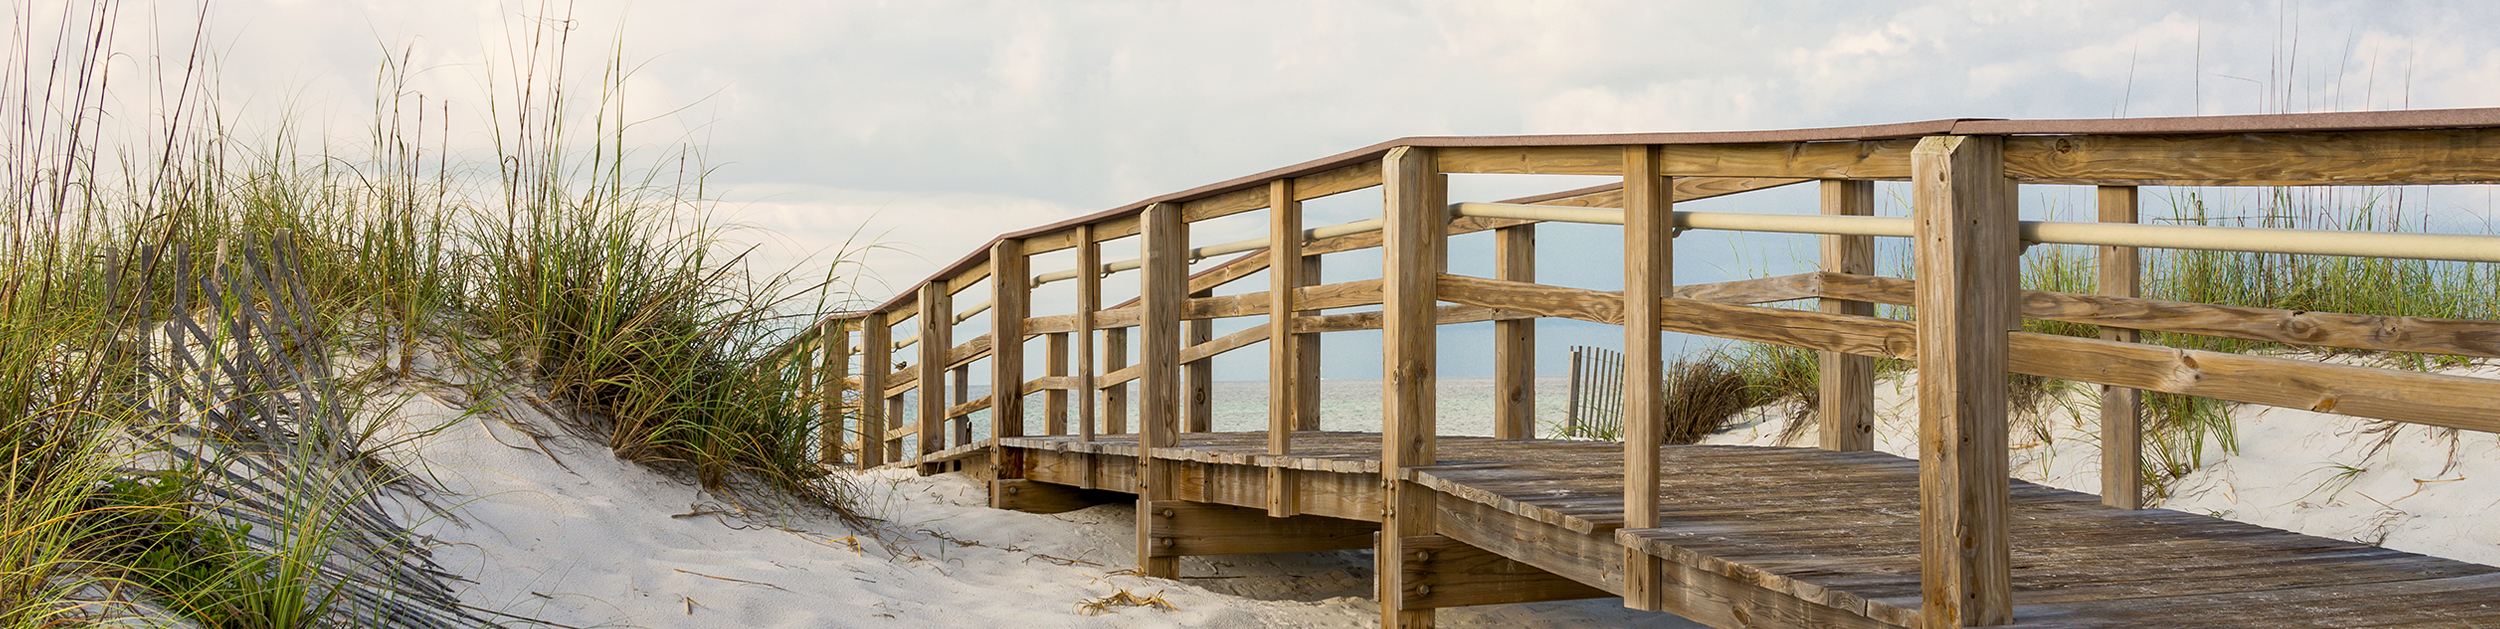 view of wooden walkway over sandy beach